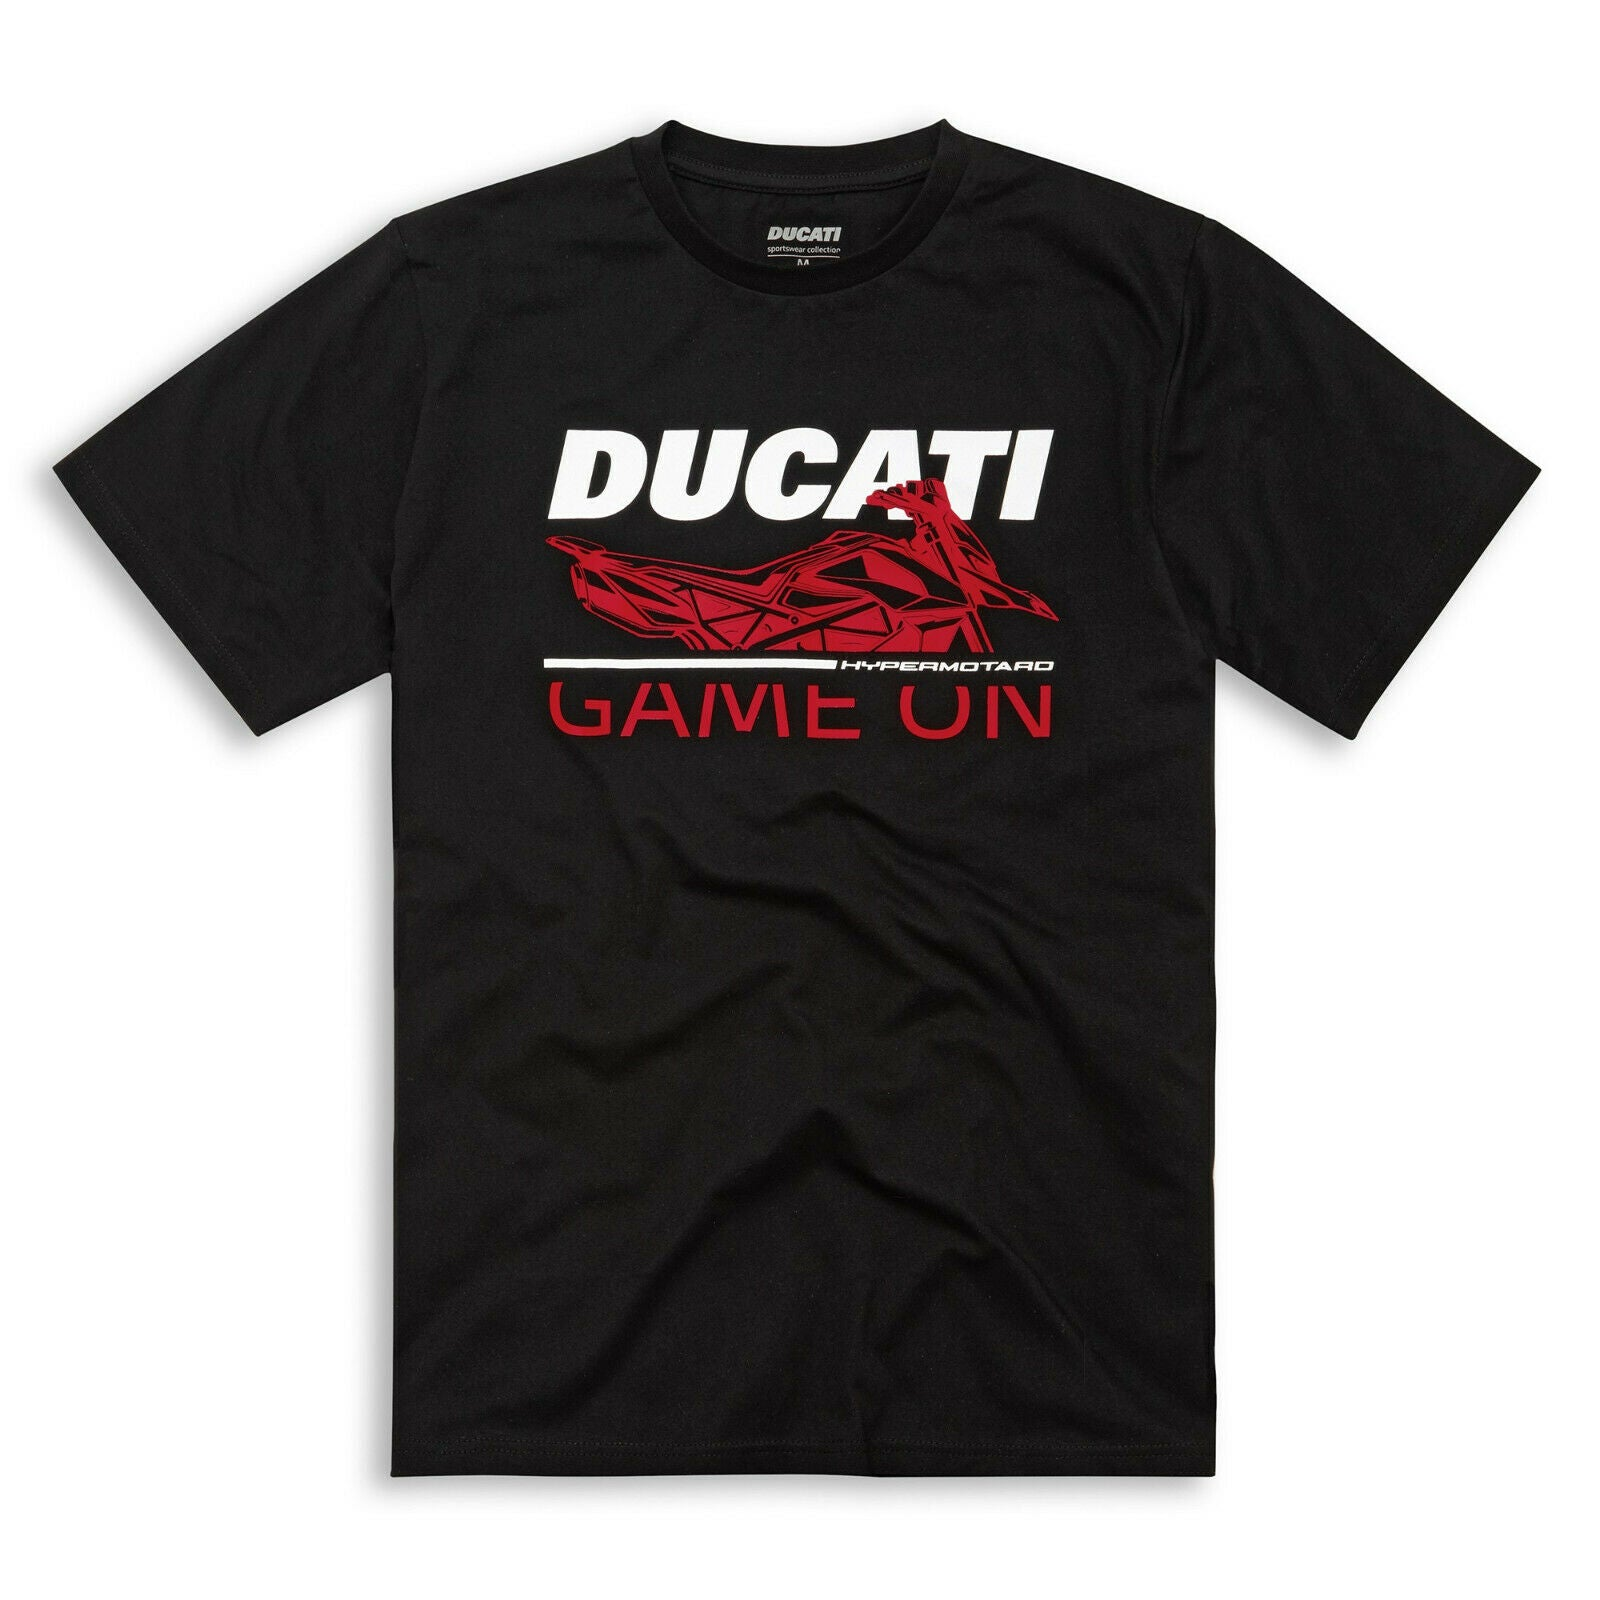 Ducati Game on Black T-shirt 98770092